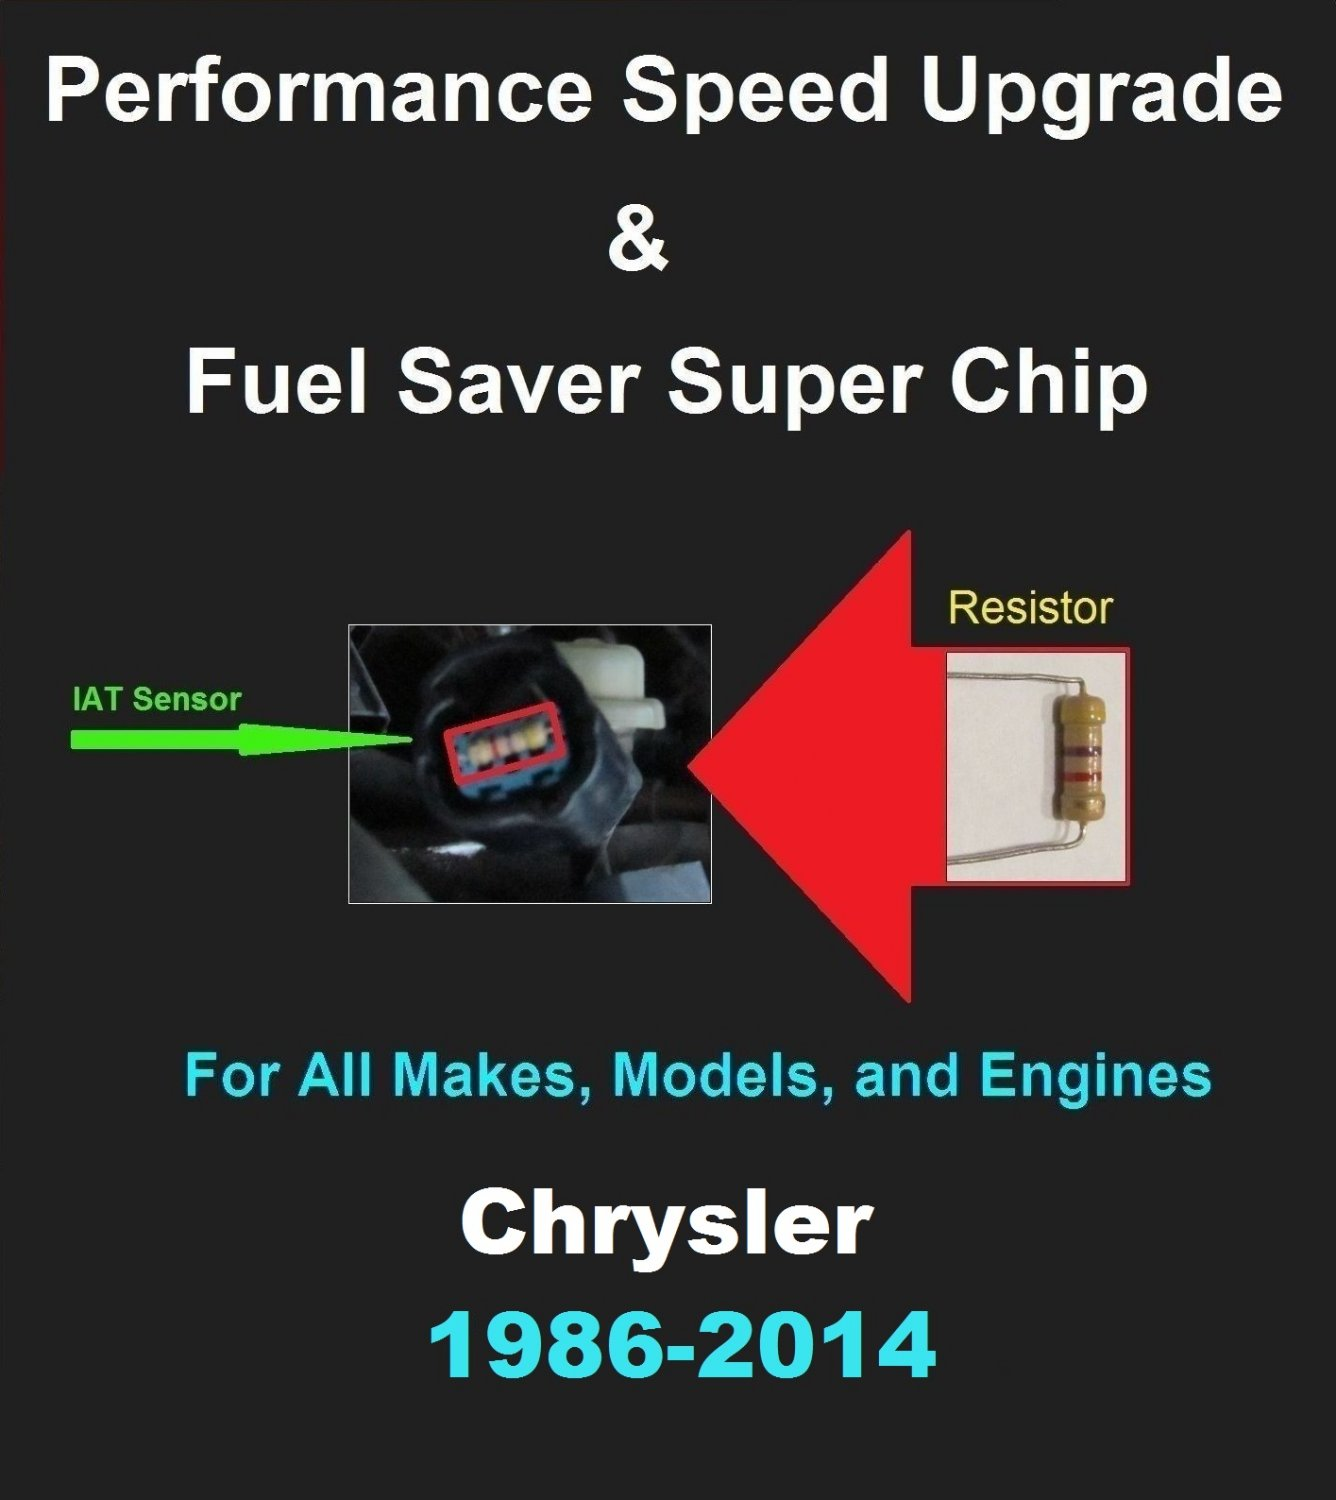 Chrysler Performance IAT Sensor Resistor Chip Mod Increase MPG HP Speed Power Super Fuel Gas Saver